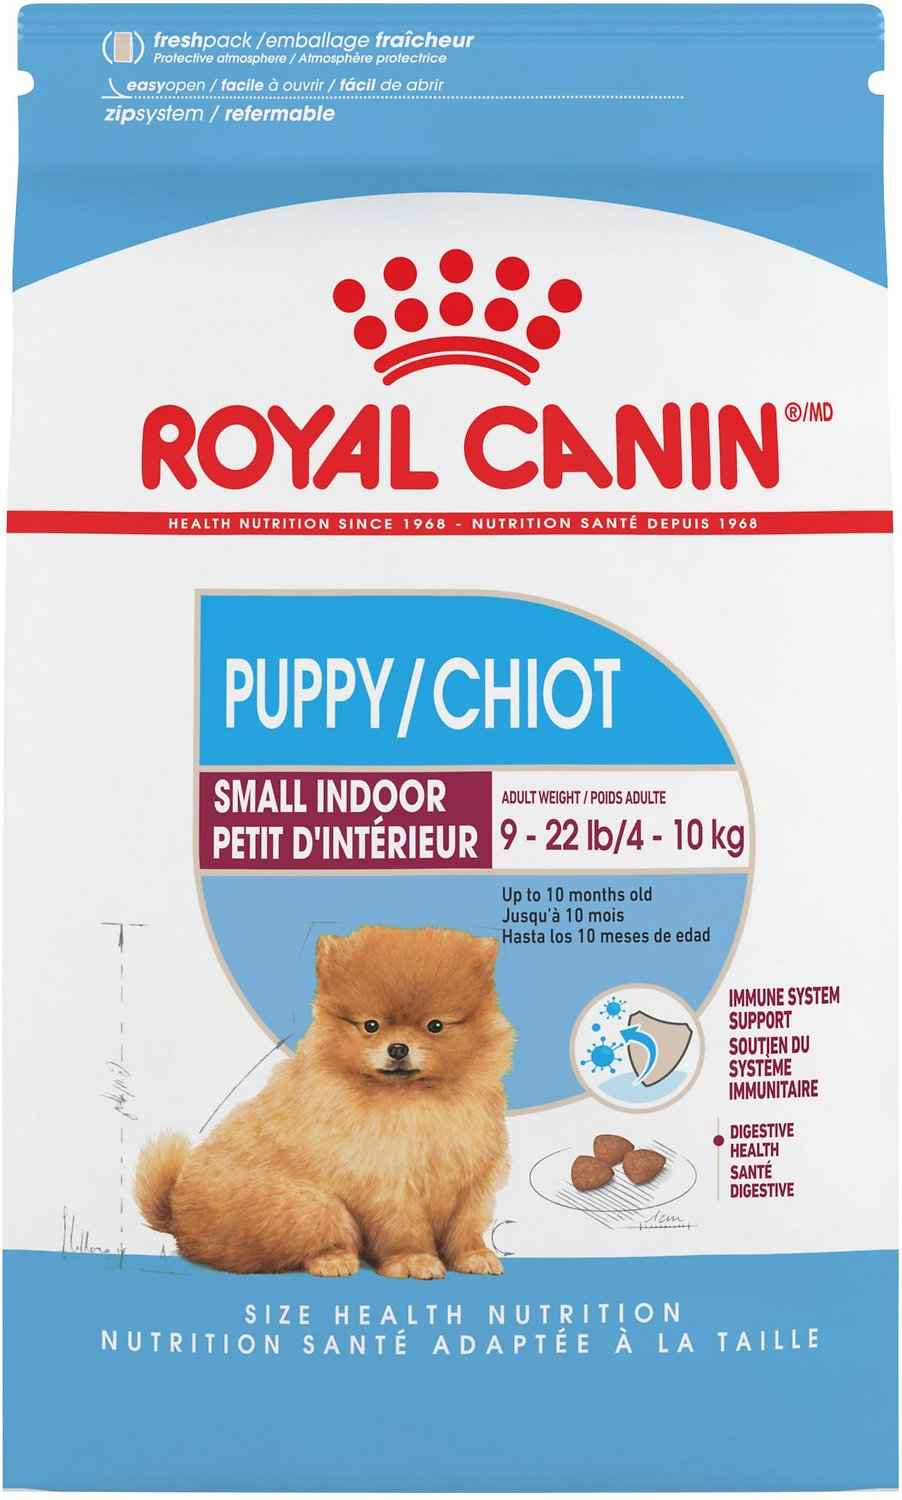 royal canin puppy mini  Royal Canin Indoor Puppy Dry Dog Food, 2.5-lb bag -